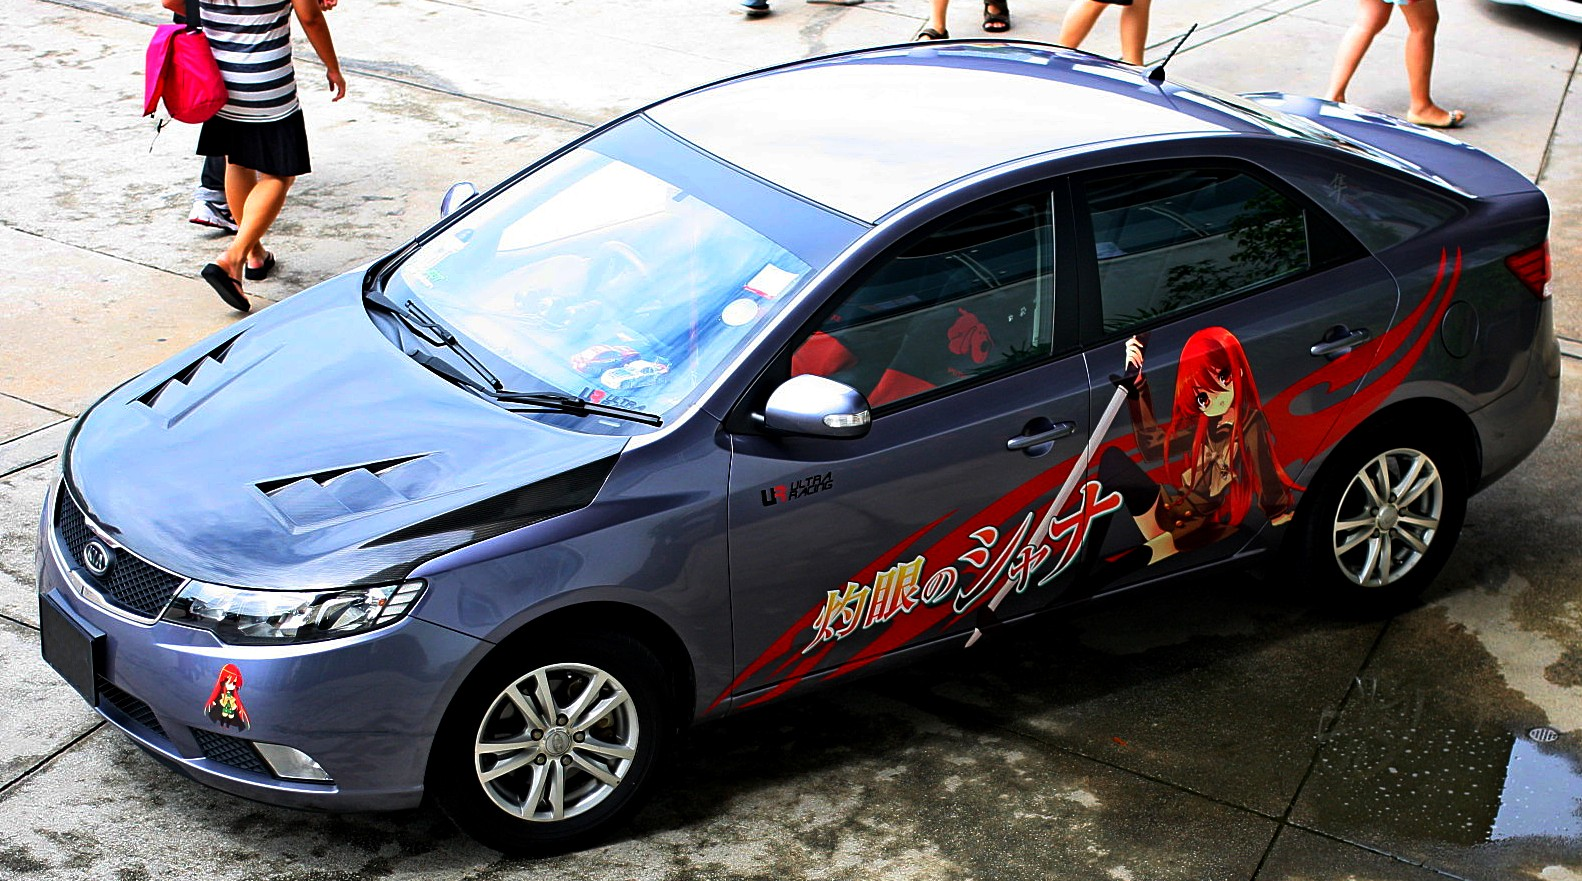 So Anyone Have Anime Decals On Their Car Itasha Forums - Design decals for cars